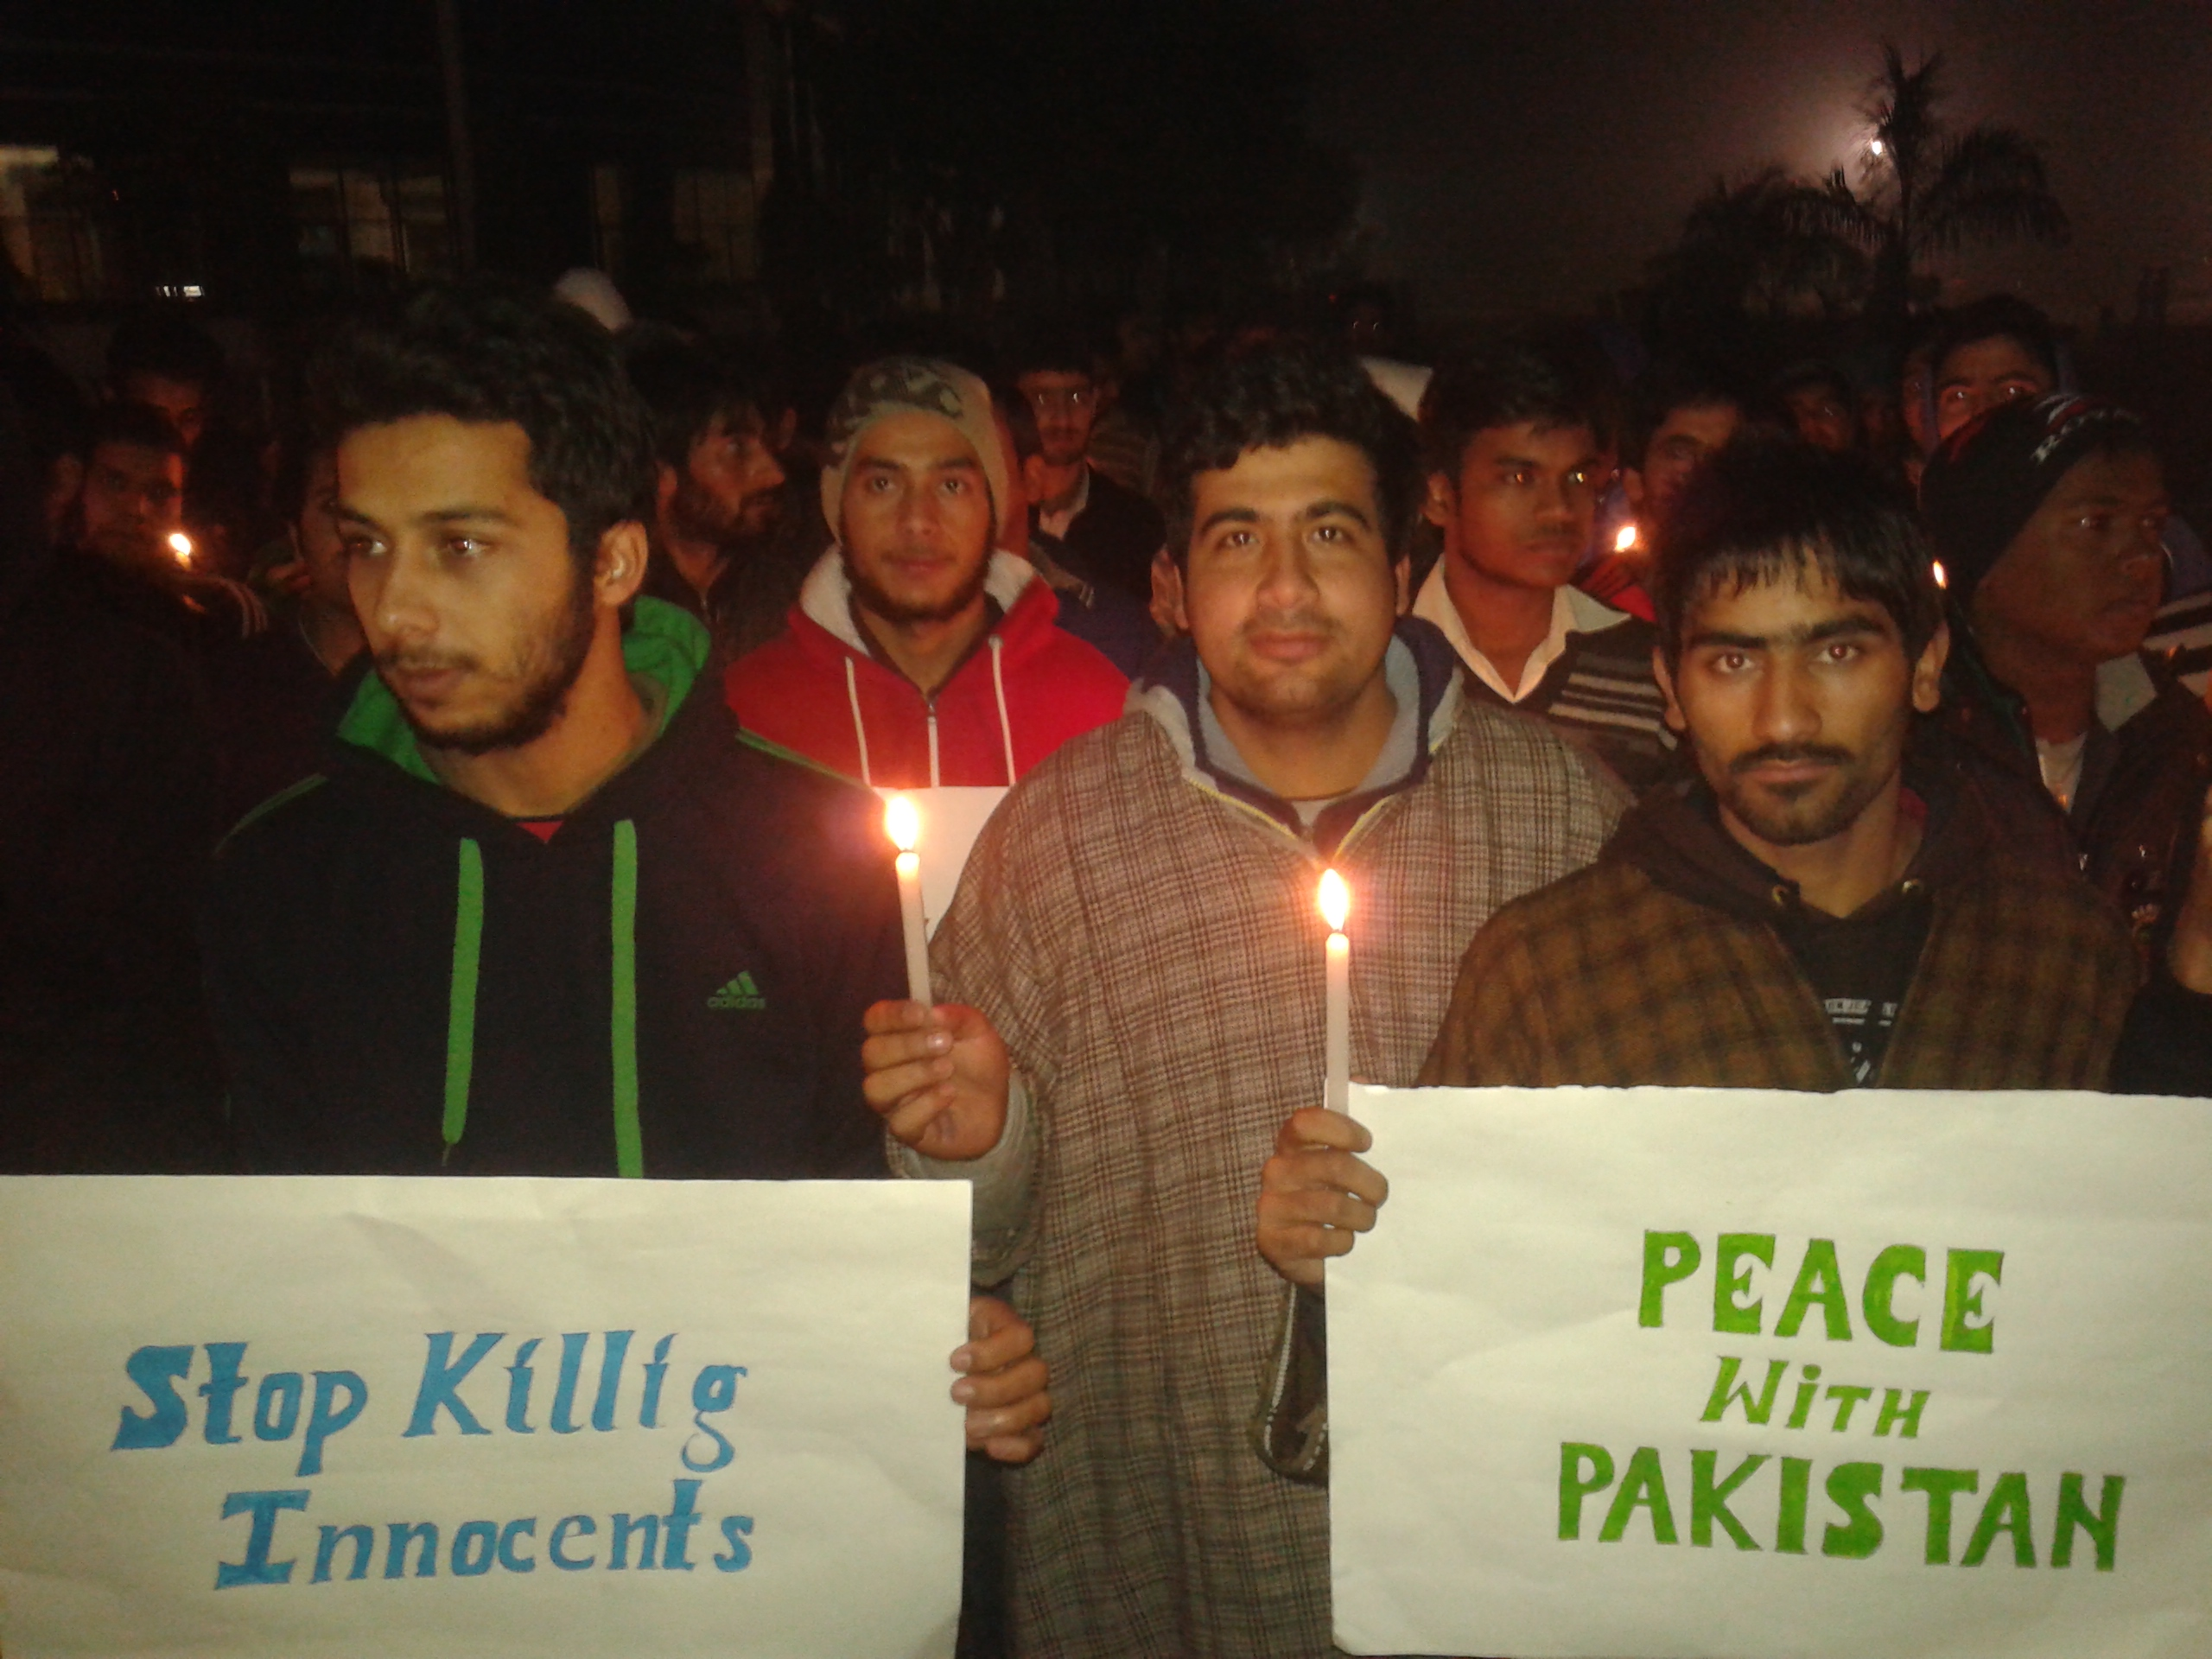 Candle_march_against_Peshwar_attacks_in_Ambala,_Haryana,_India3